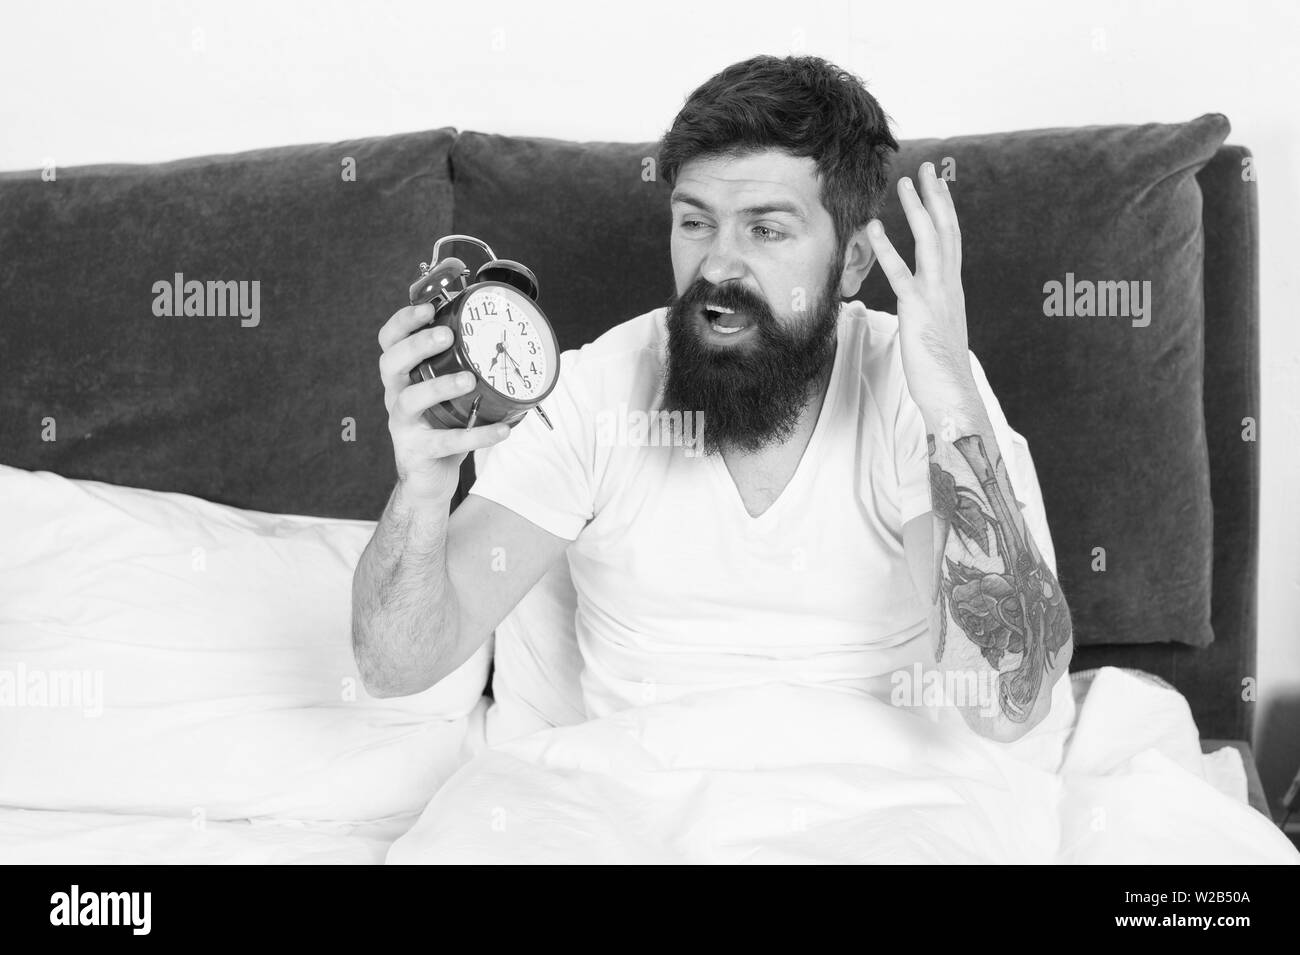 Get up with alarm clock. Overslept again. Tips for waking up early. Tips for becoming an early riser. Man bearded hipster sleepy face in bed with alarm clock. Problem with early morning awakening. - Stock Image